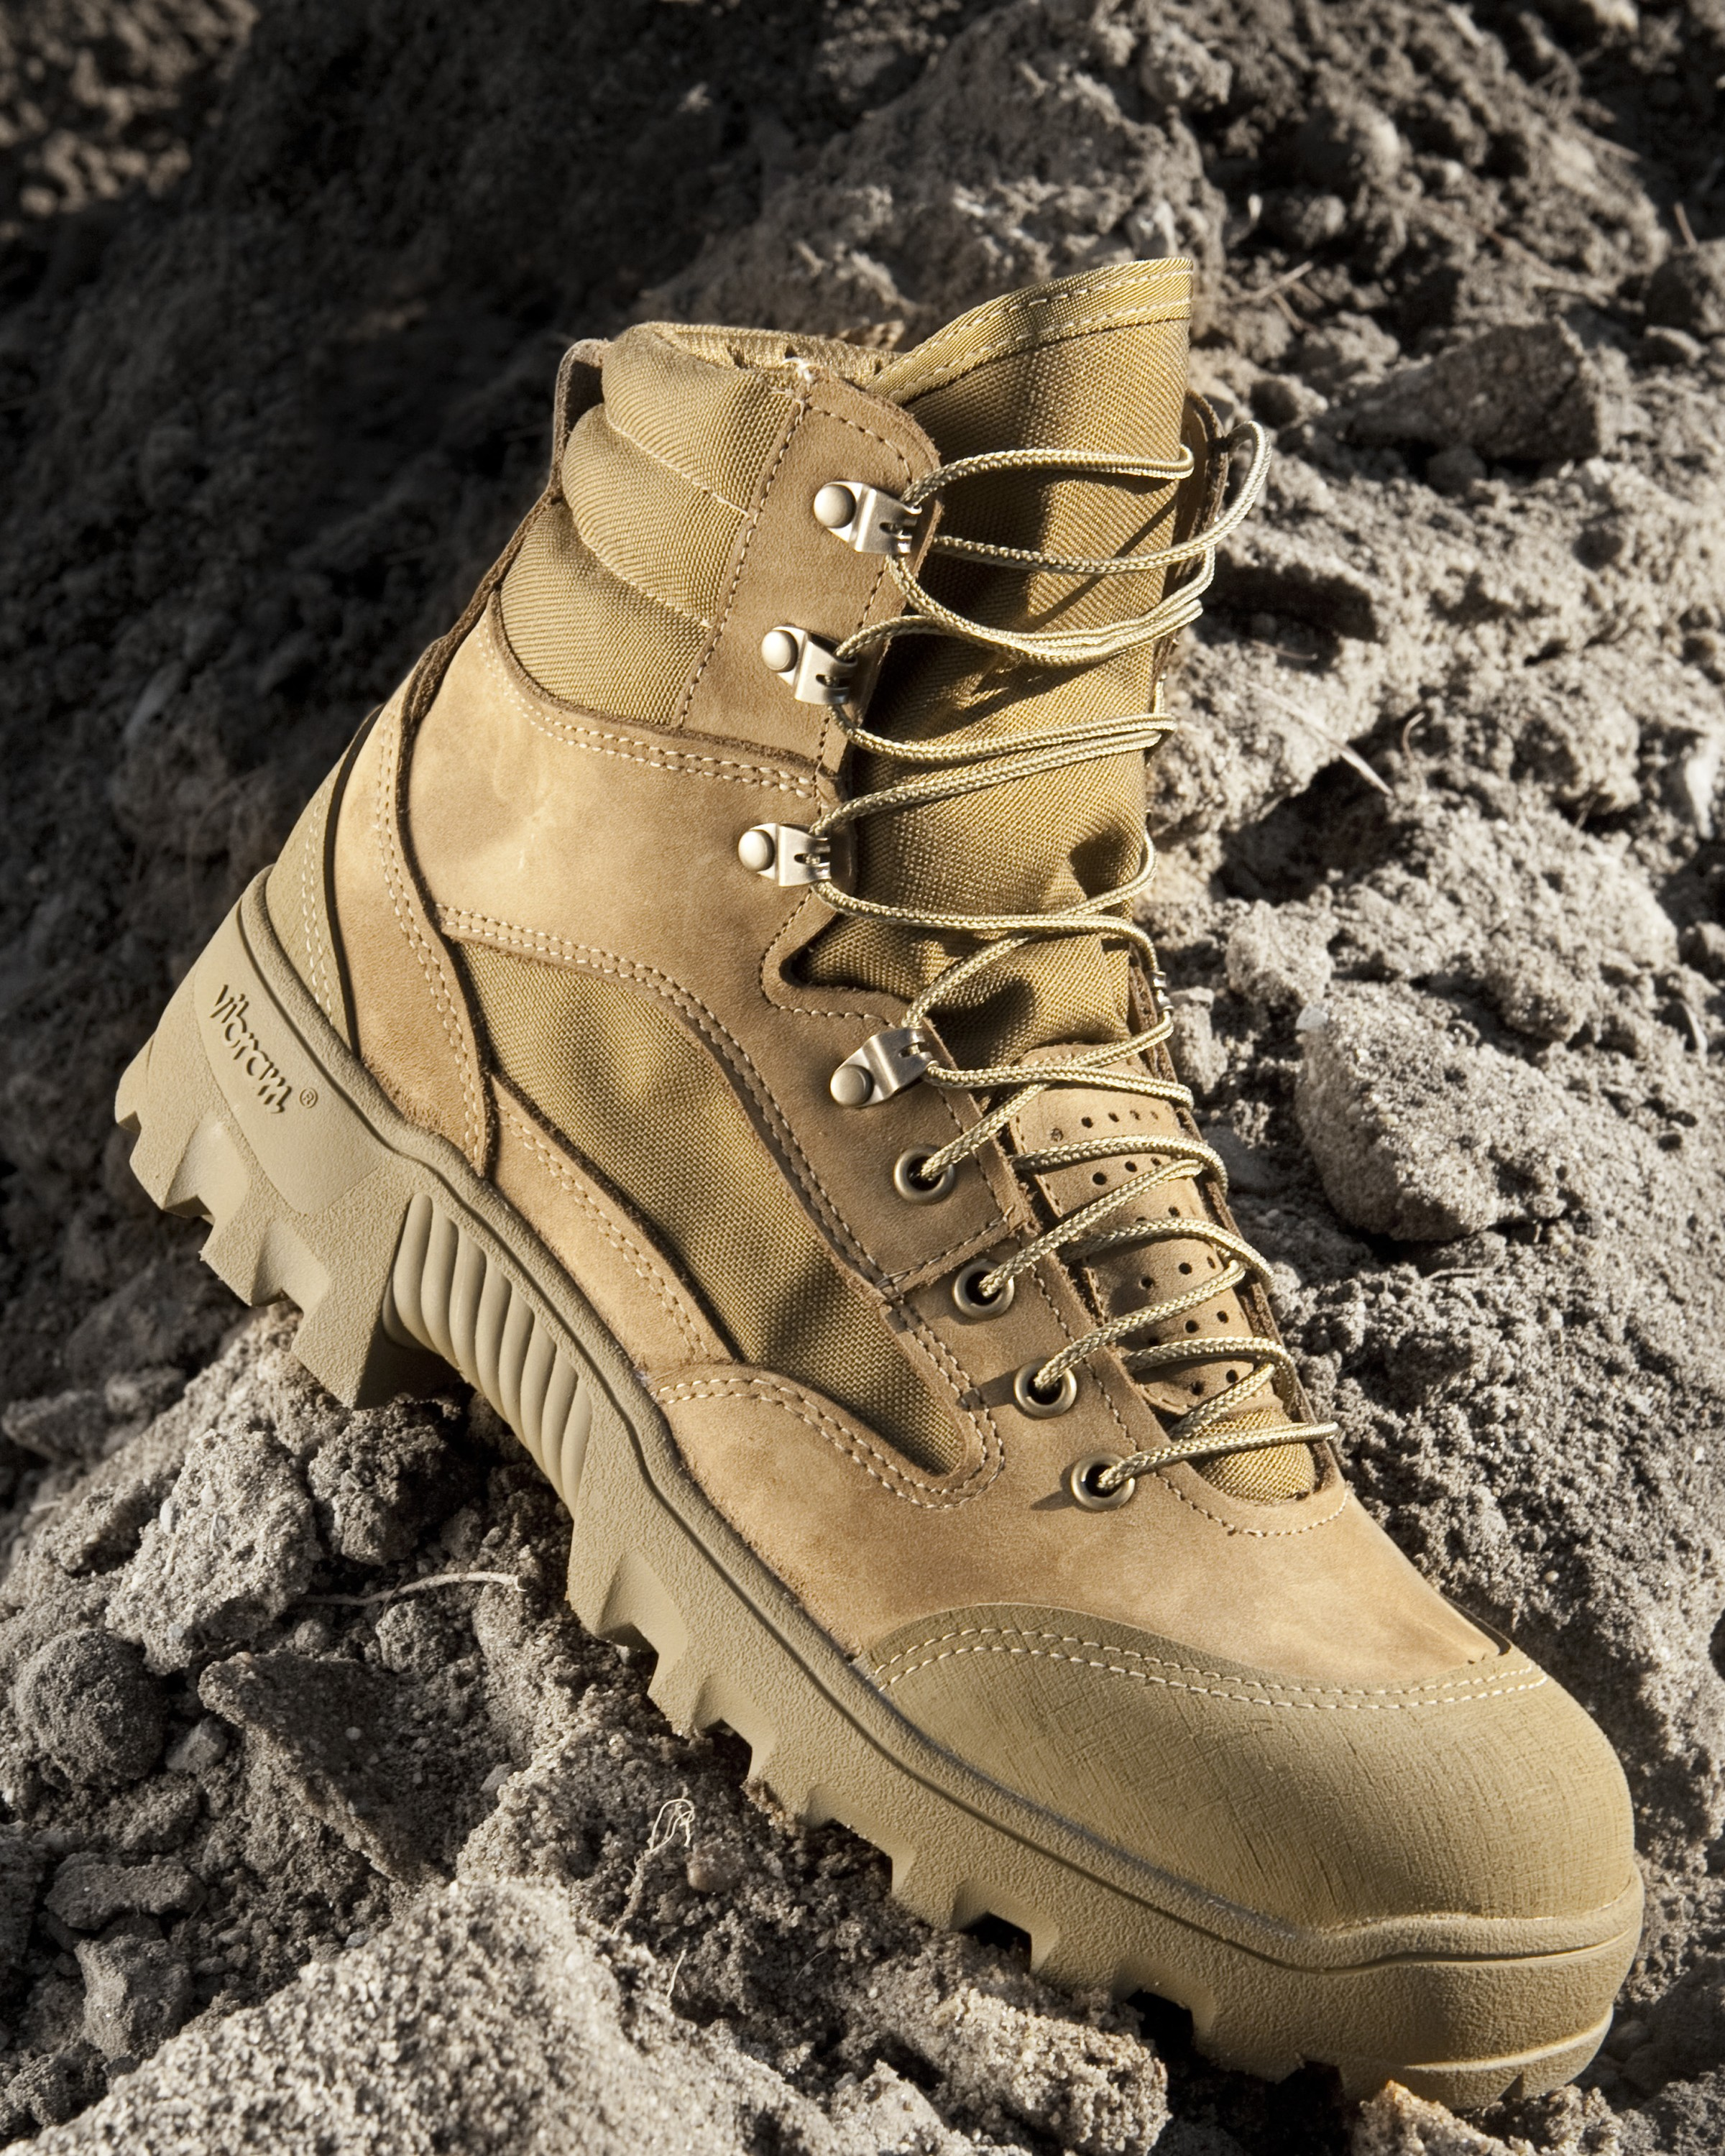 6205d29647e The next step in Soldier footwear | Article | The United States Army